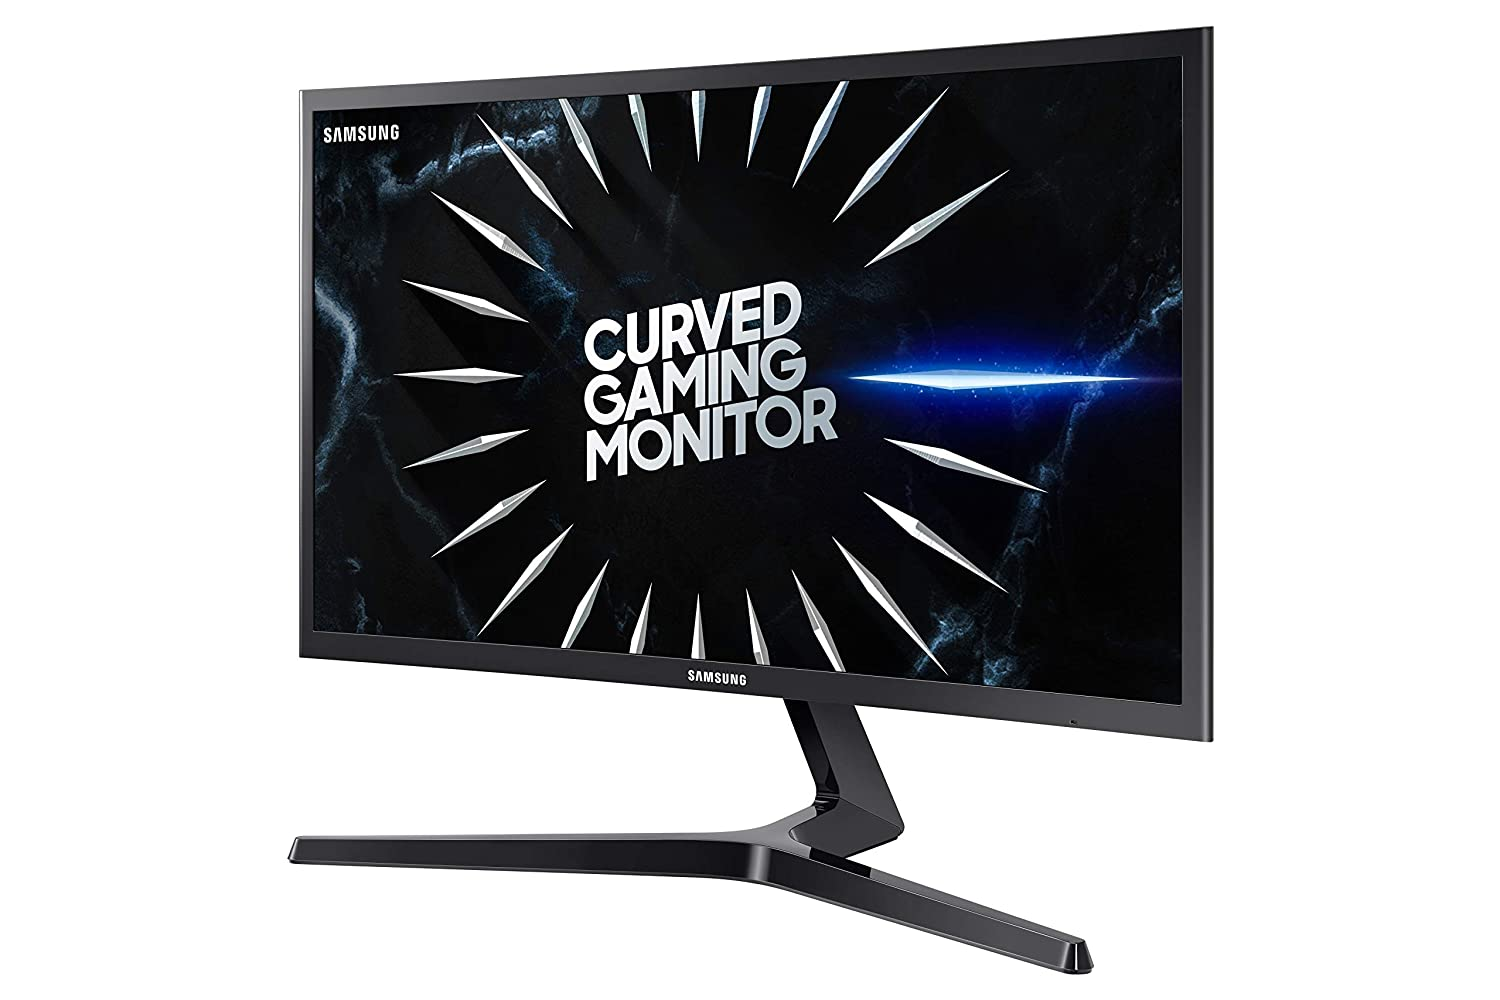 Samsung 24-Inch CRG5 144Hz Curved Gaming Monitor LC24RG50FQNXZA Computer Monitor, 1920 x 1080p Resolution, 4ms Response, FreeSync, Game Mode, HDMI